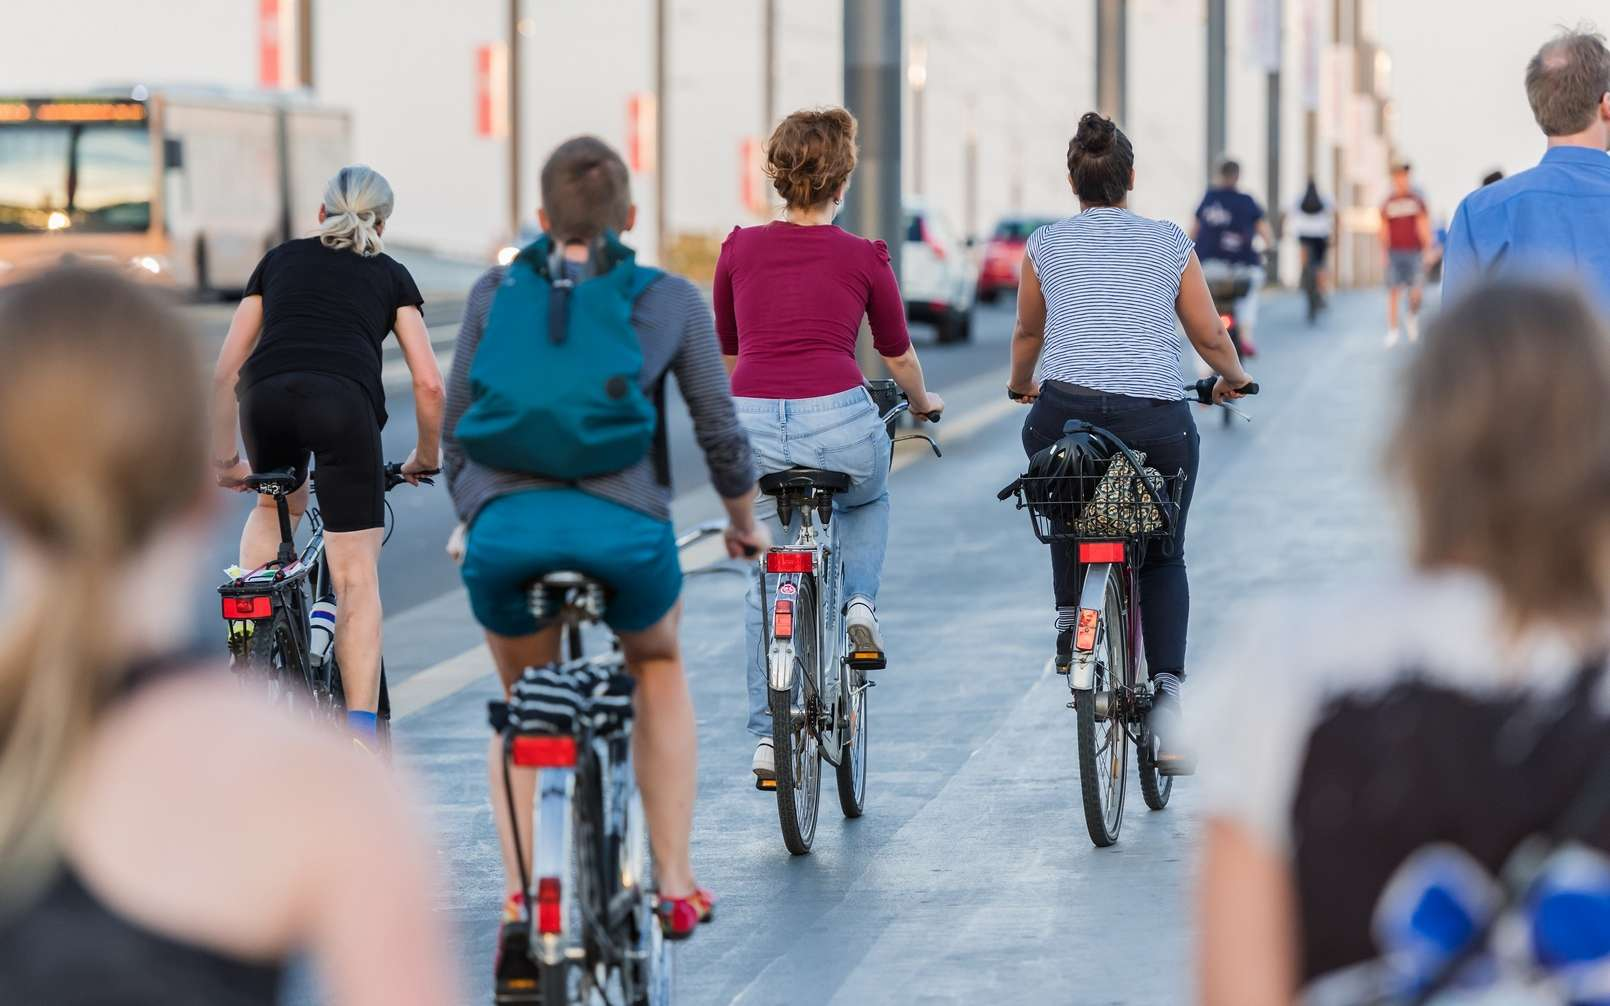 Europe is banking on soft mobility with a very ambitious cycling plan